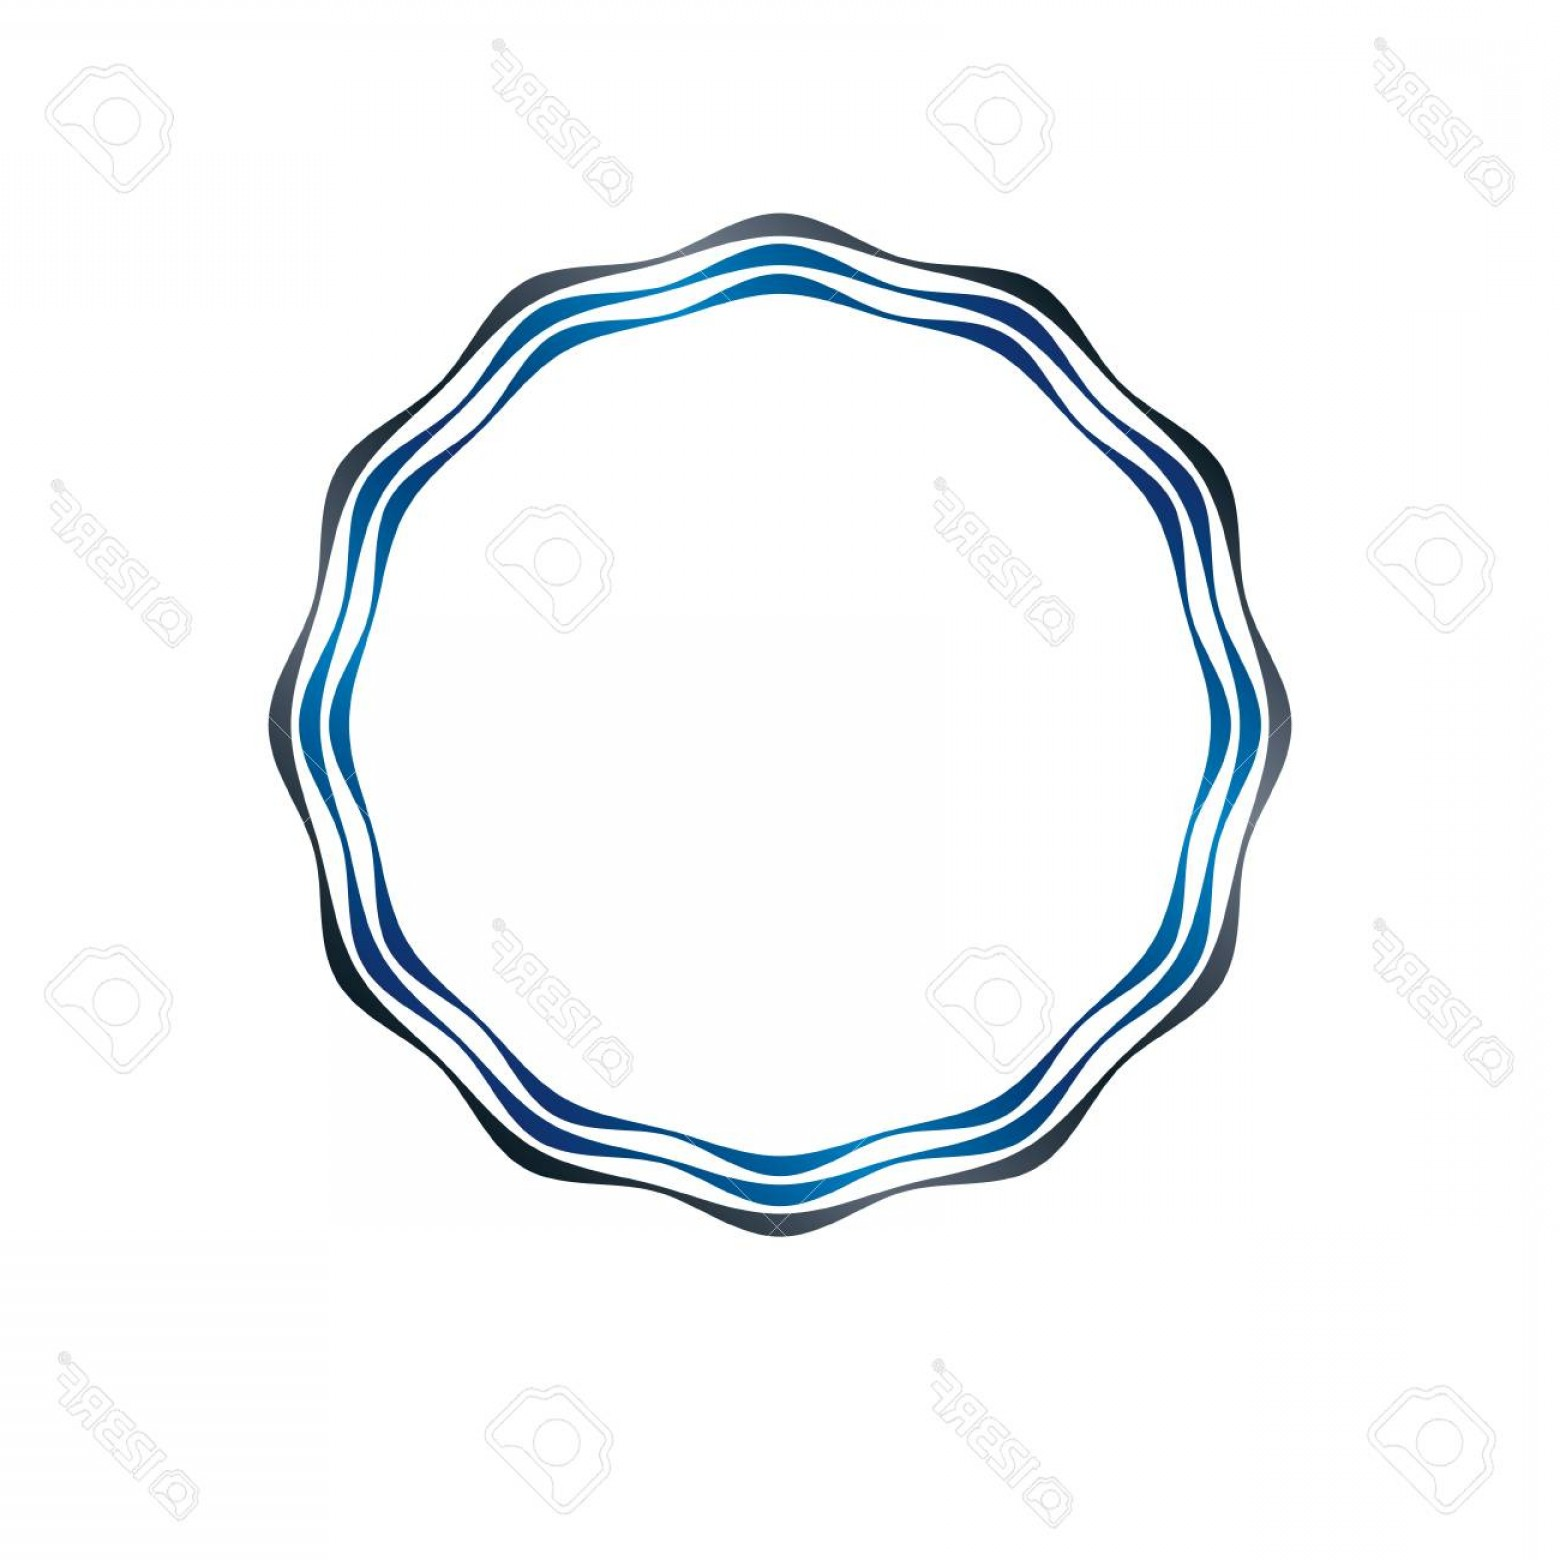 Luxury Round Frame Vector: Photostock Vector Luxury Round Frame With Empty Copy Space Classic Heraldic Blank Circular Shape Created With Undulate